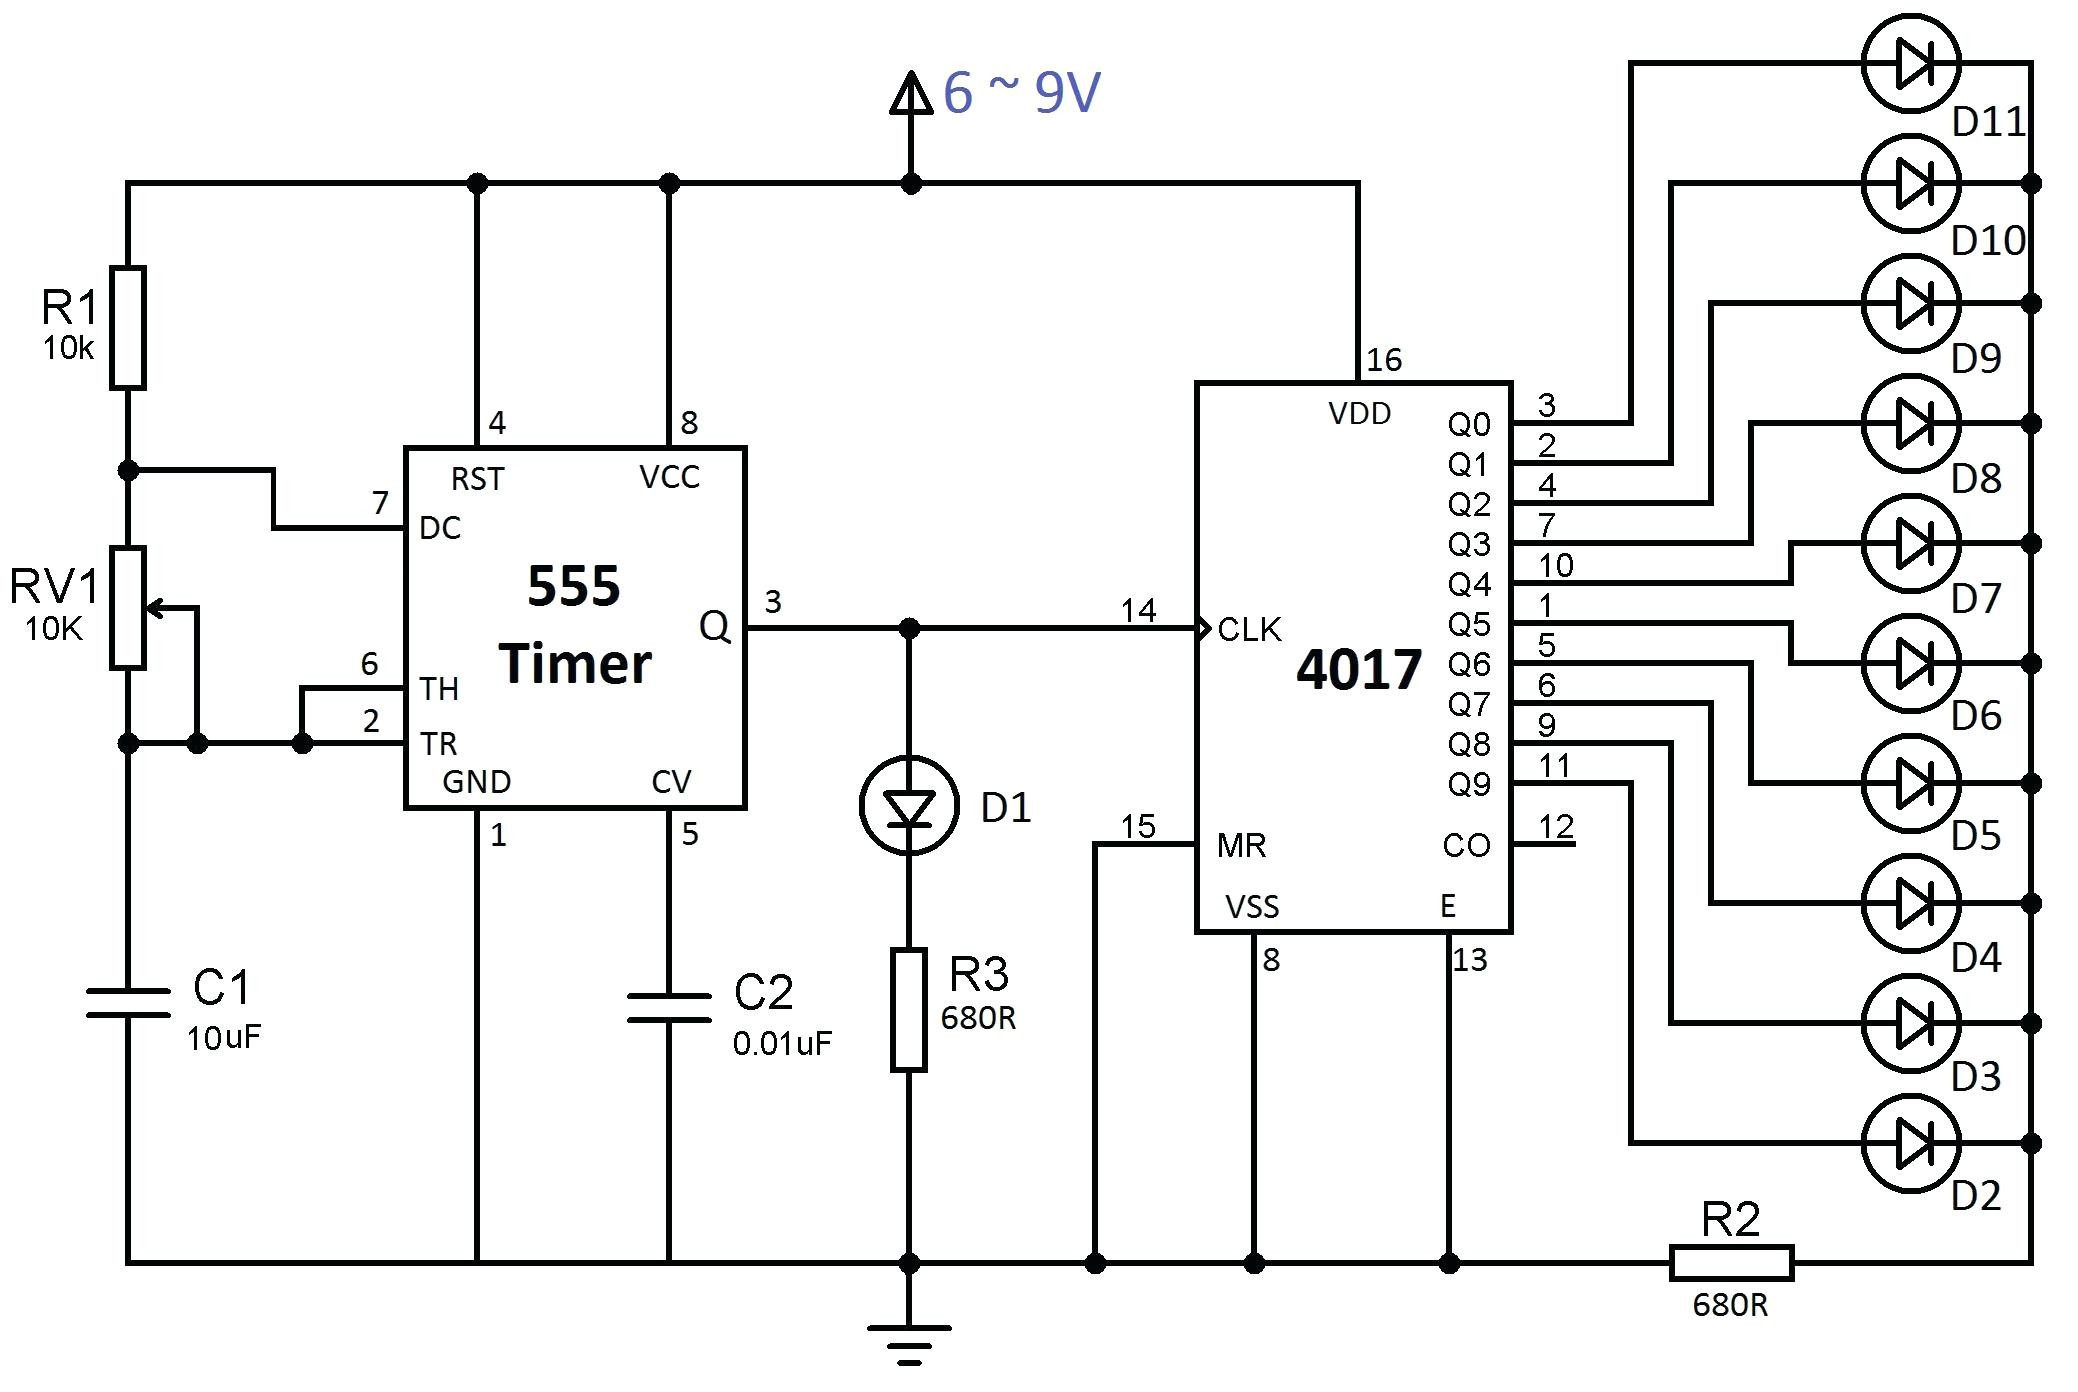 Wiring Diagram Time Delay Relay New Wiring Diagram Timer Relay Refrence How to Wire A Time